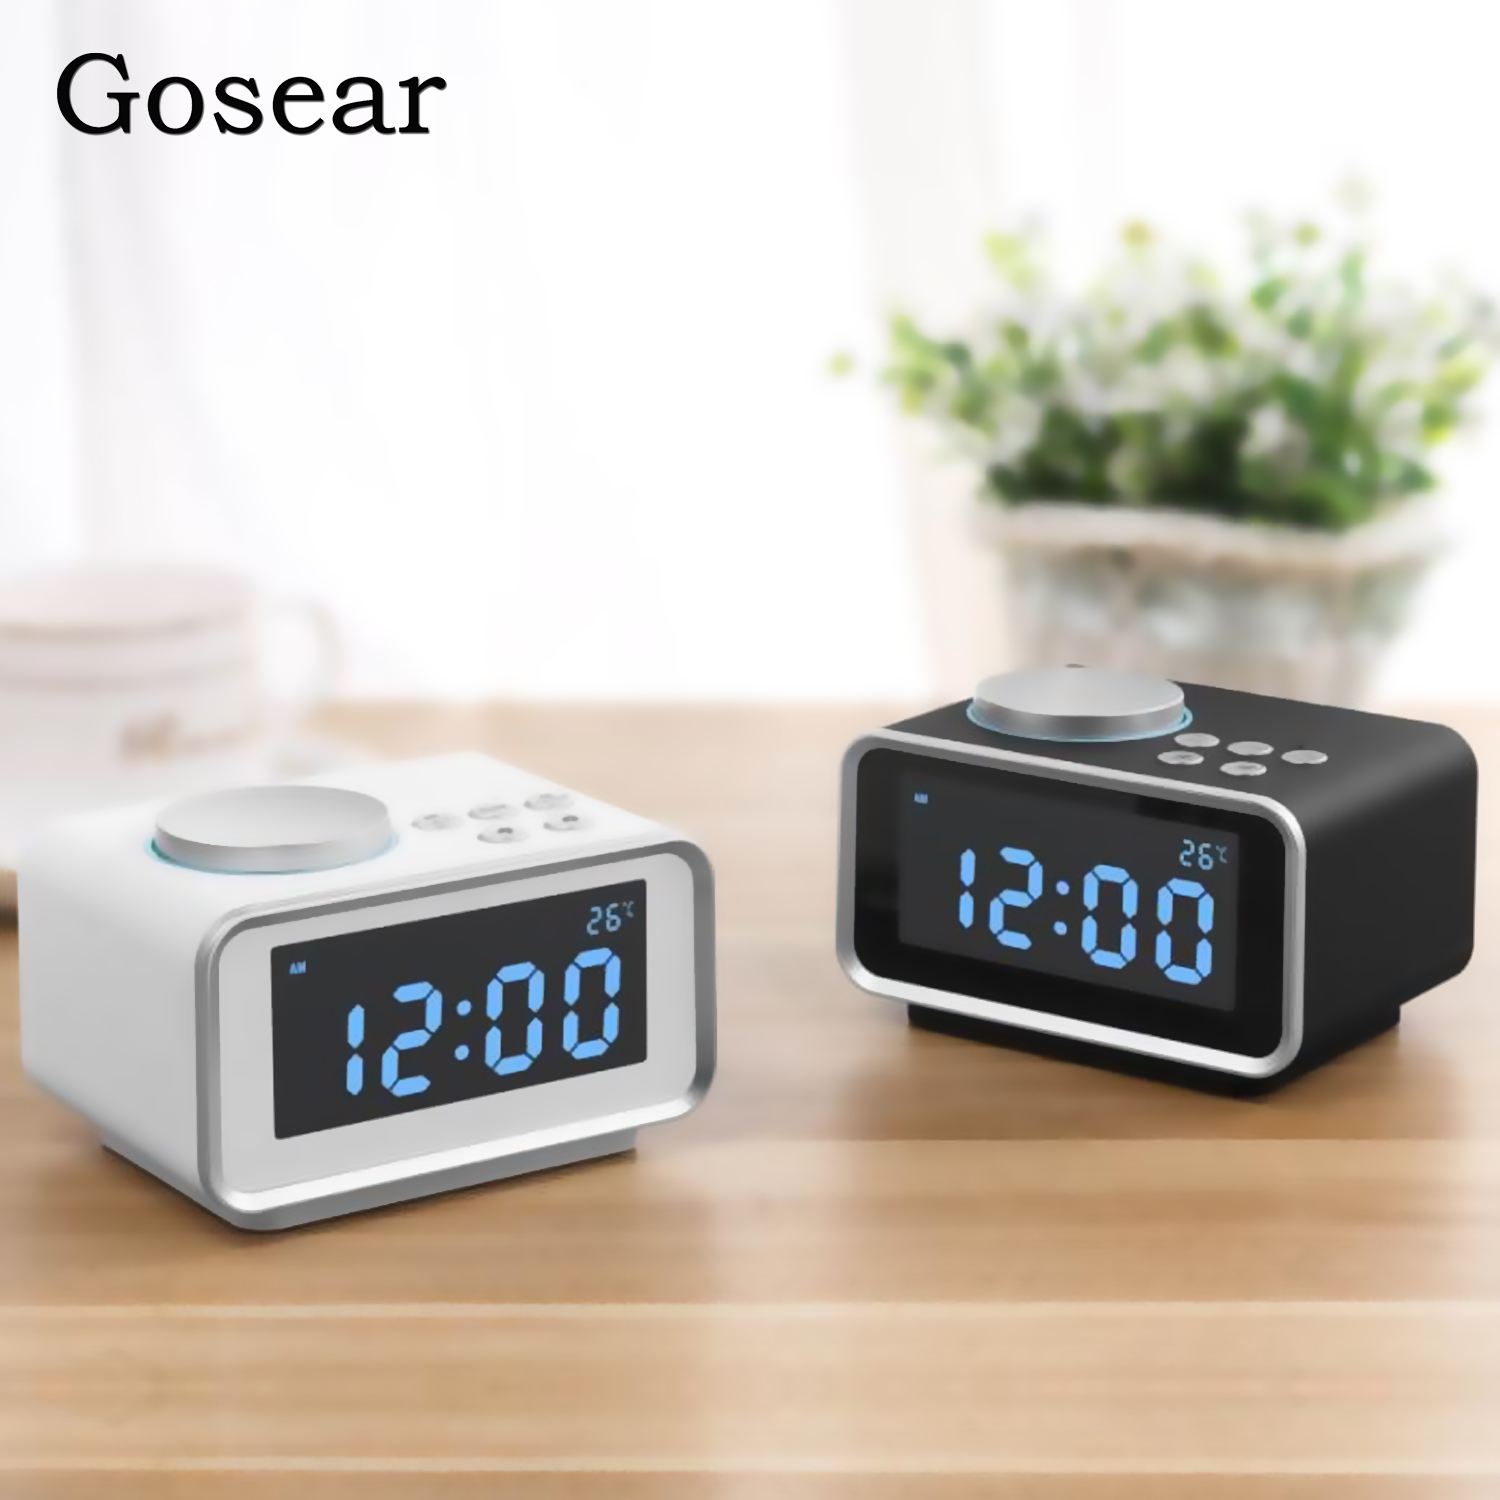 Gosear Digital Bedside LCD Alarm Clock with FM Radio Indoor Thermometer 2 USB Charger Port Snooze And Dual Alarm Function